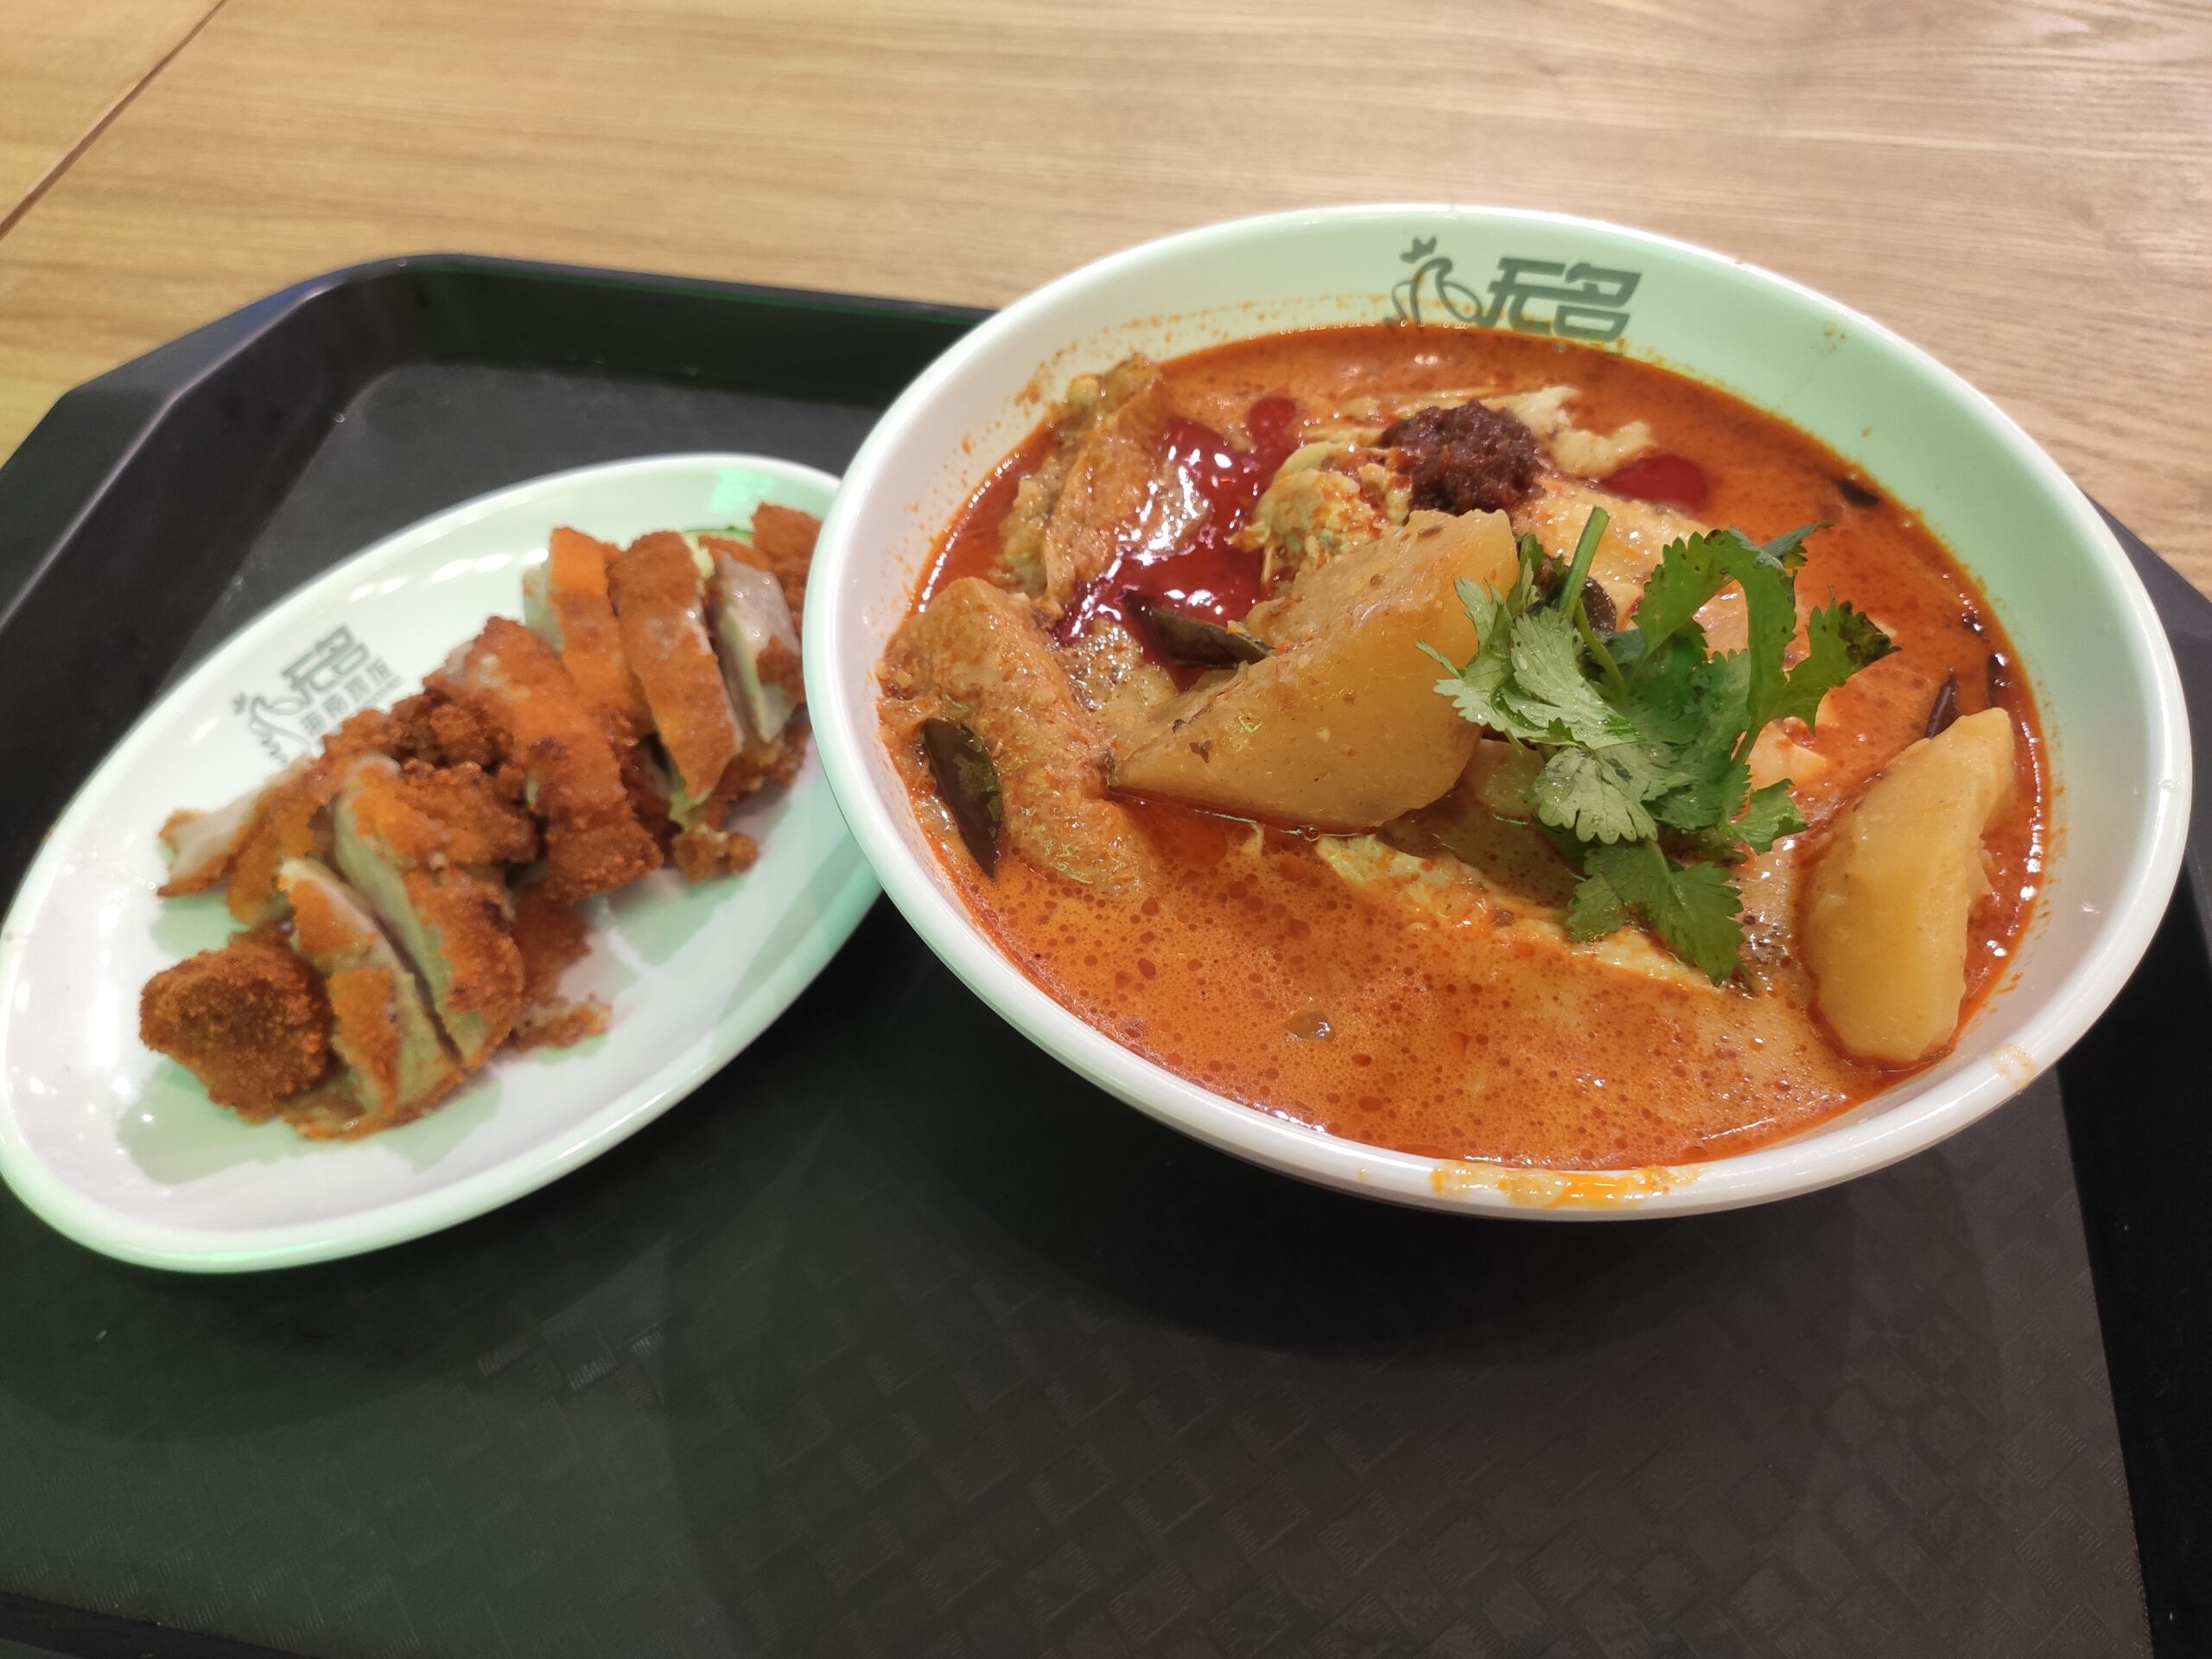 Wu Ming Hainanese Chicken Rice: Curry Chicken Noodles with Chicken Cutlet